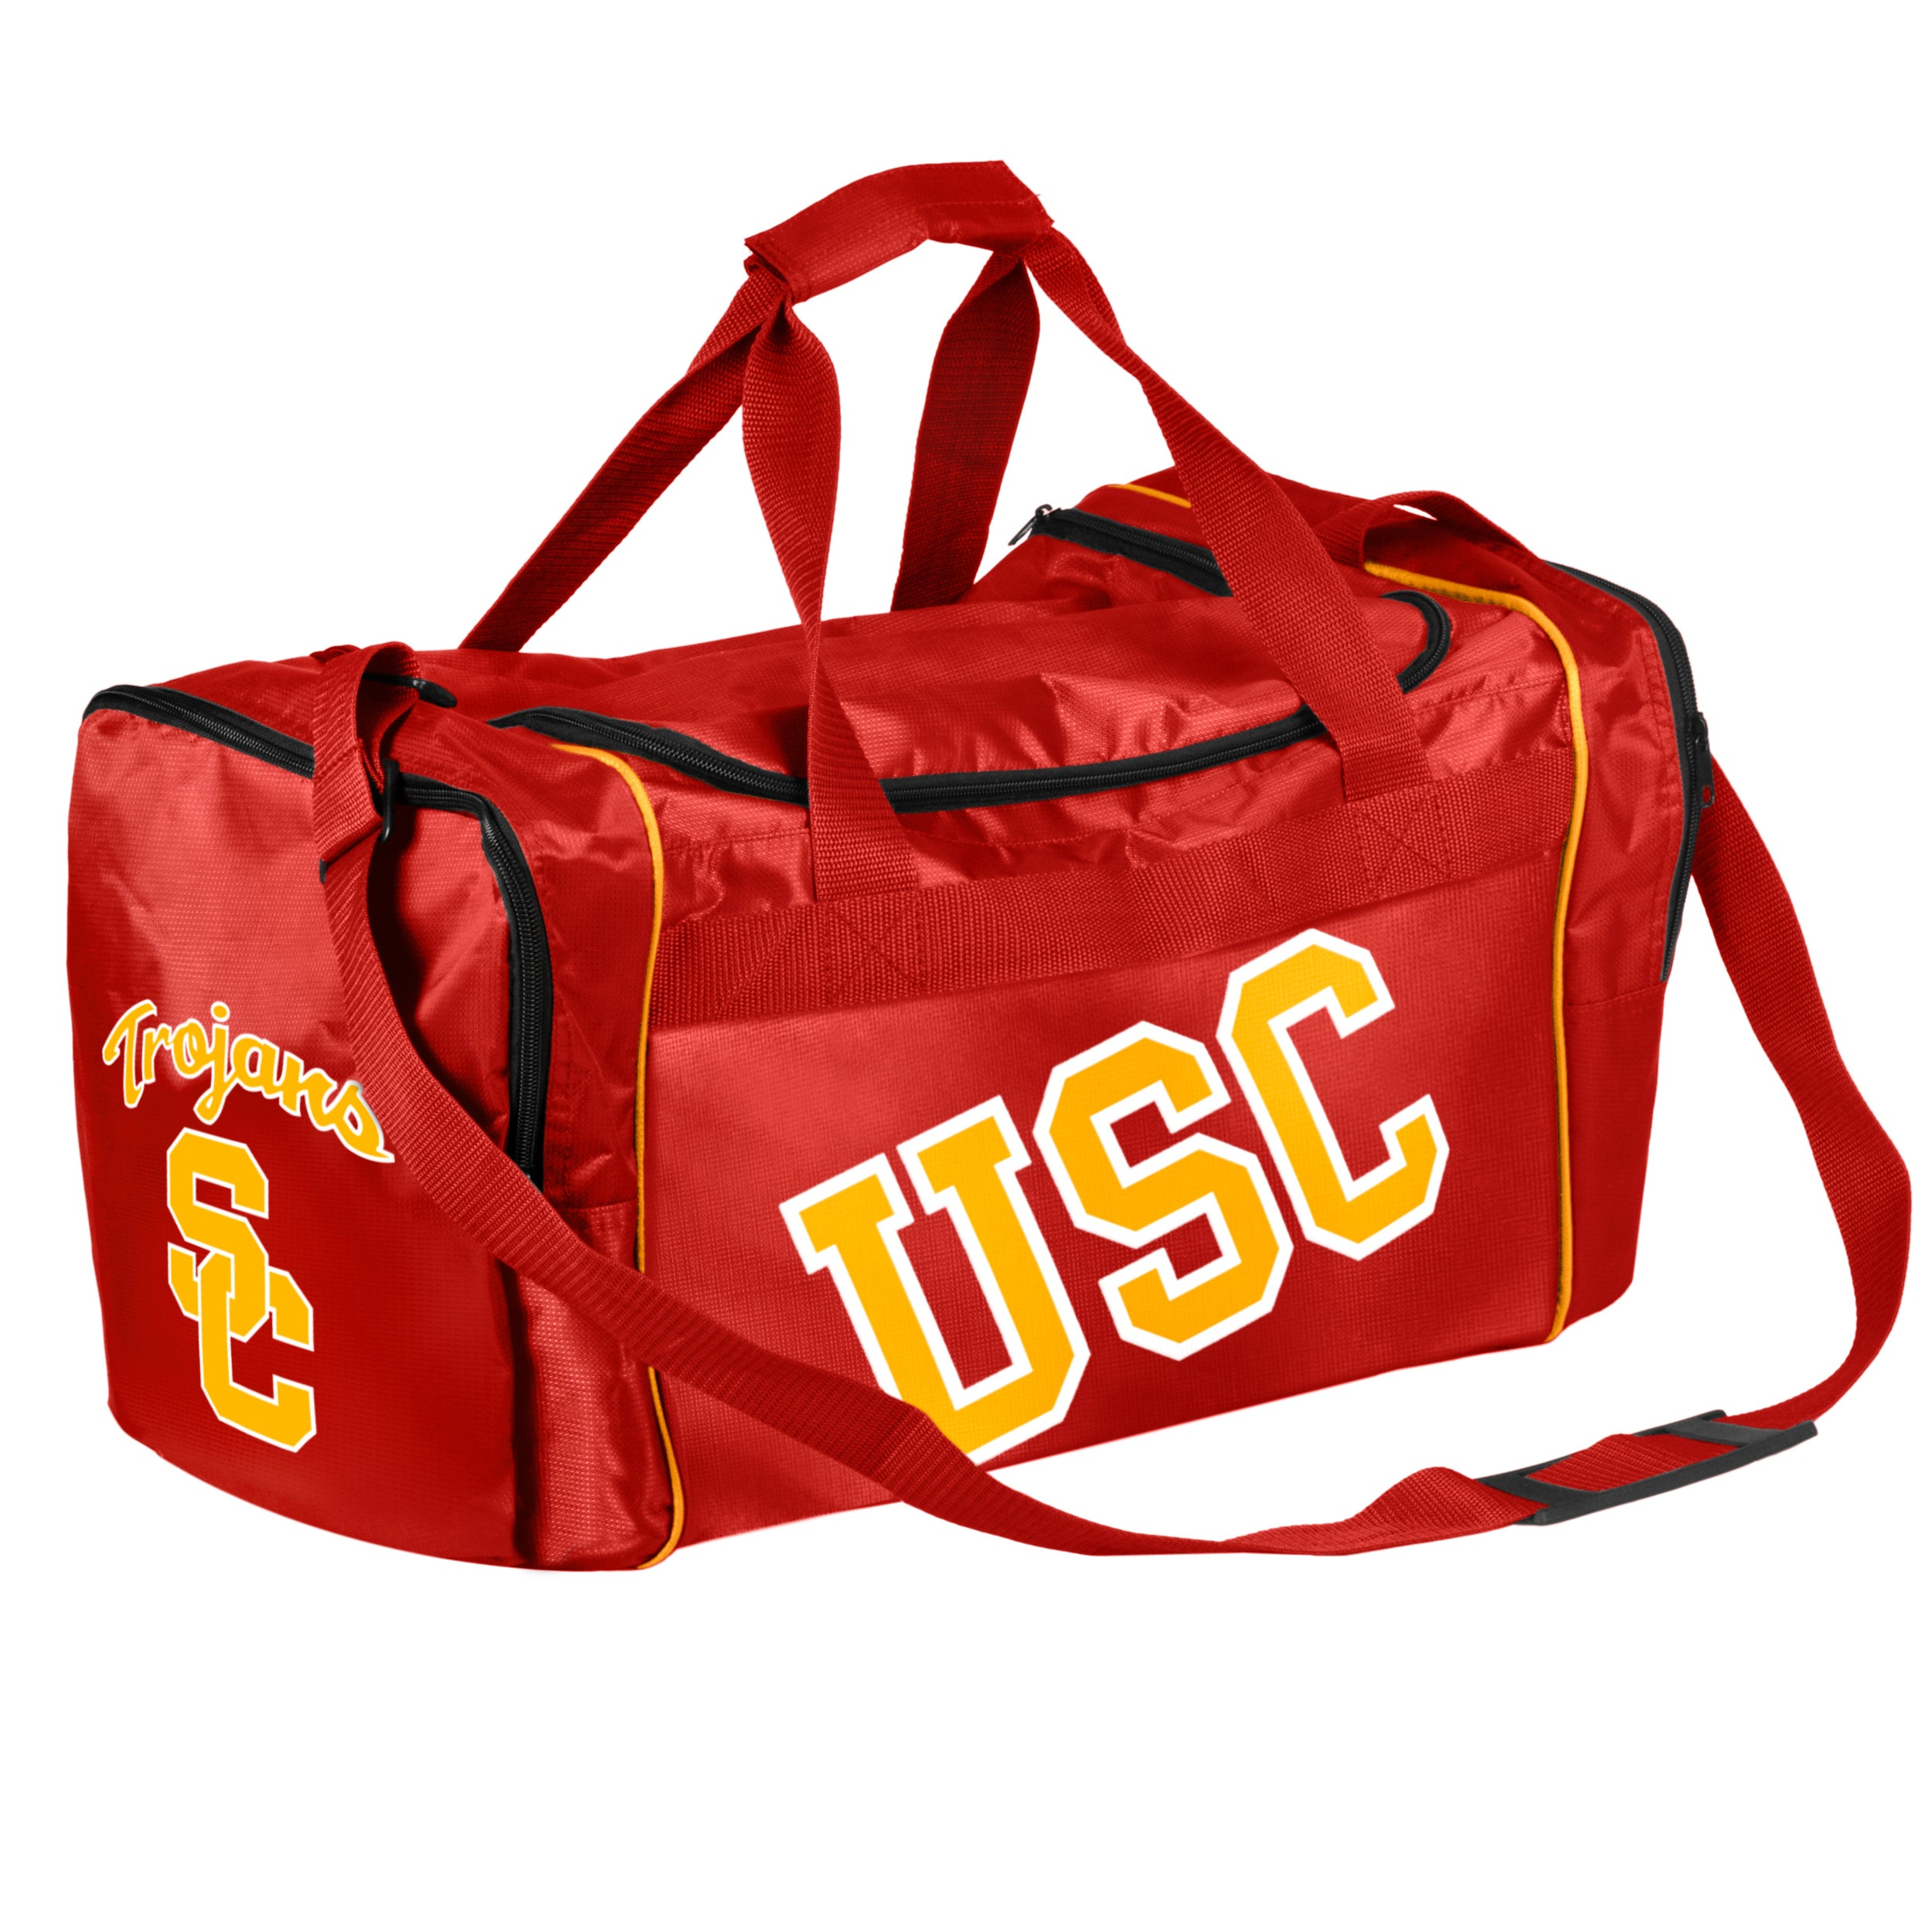 069231b1cae Shop Forever CollectiblesNCAA USC Trojans 21-inch Core Duffle Bag - Free  Shipping On Orders Over  45 - Overstock - 8554331